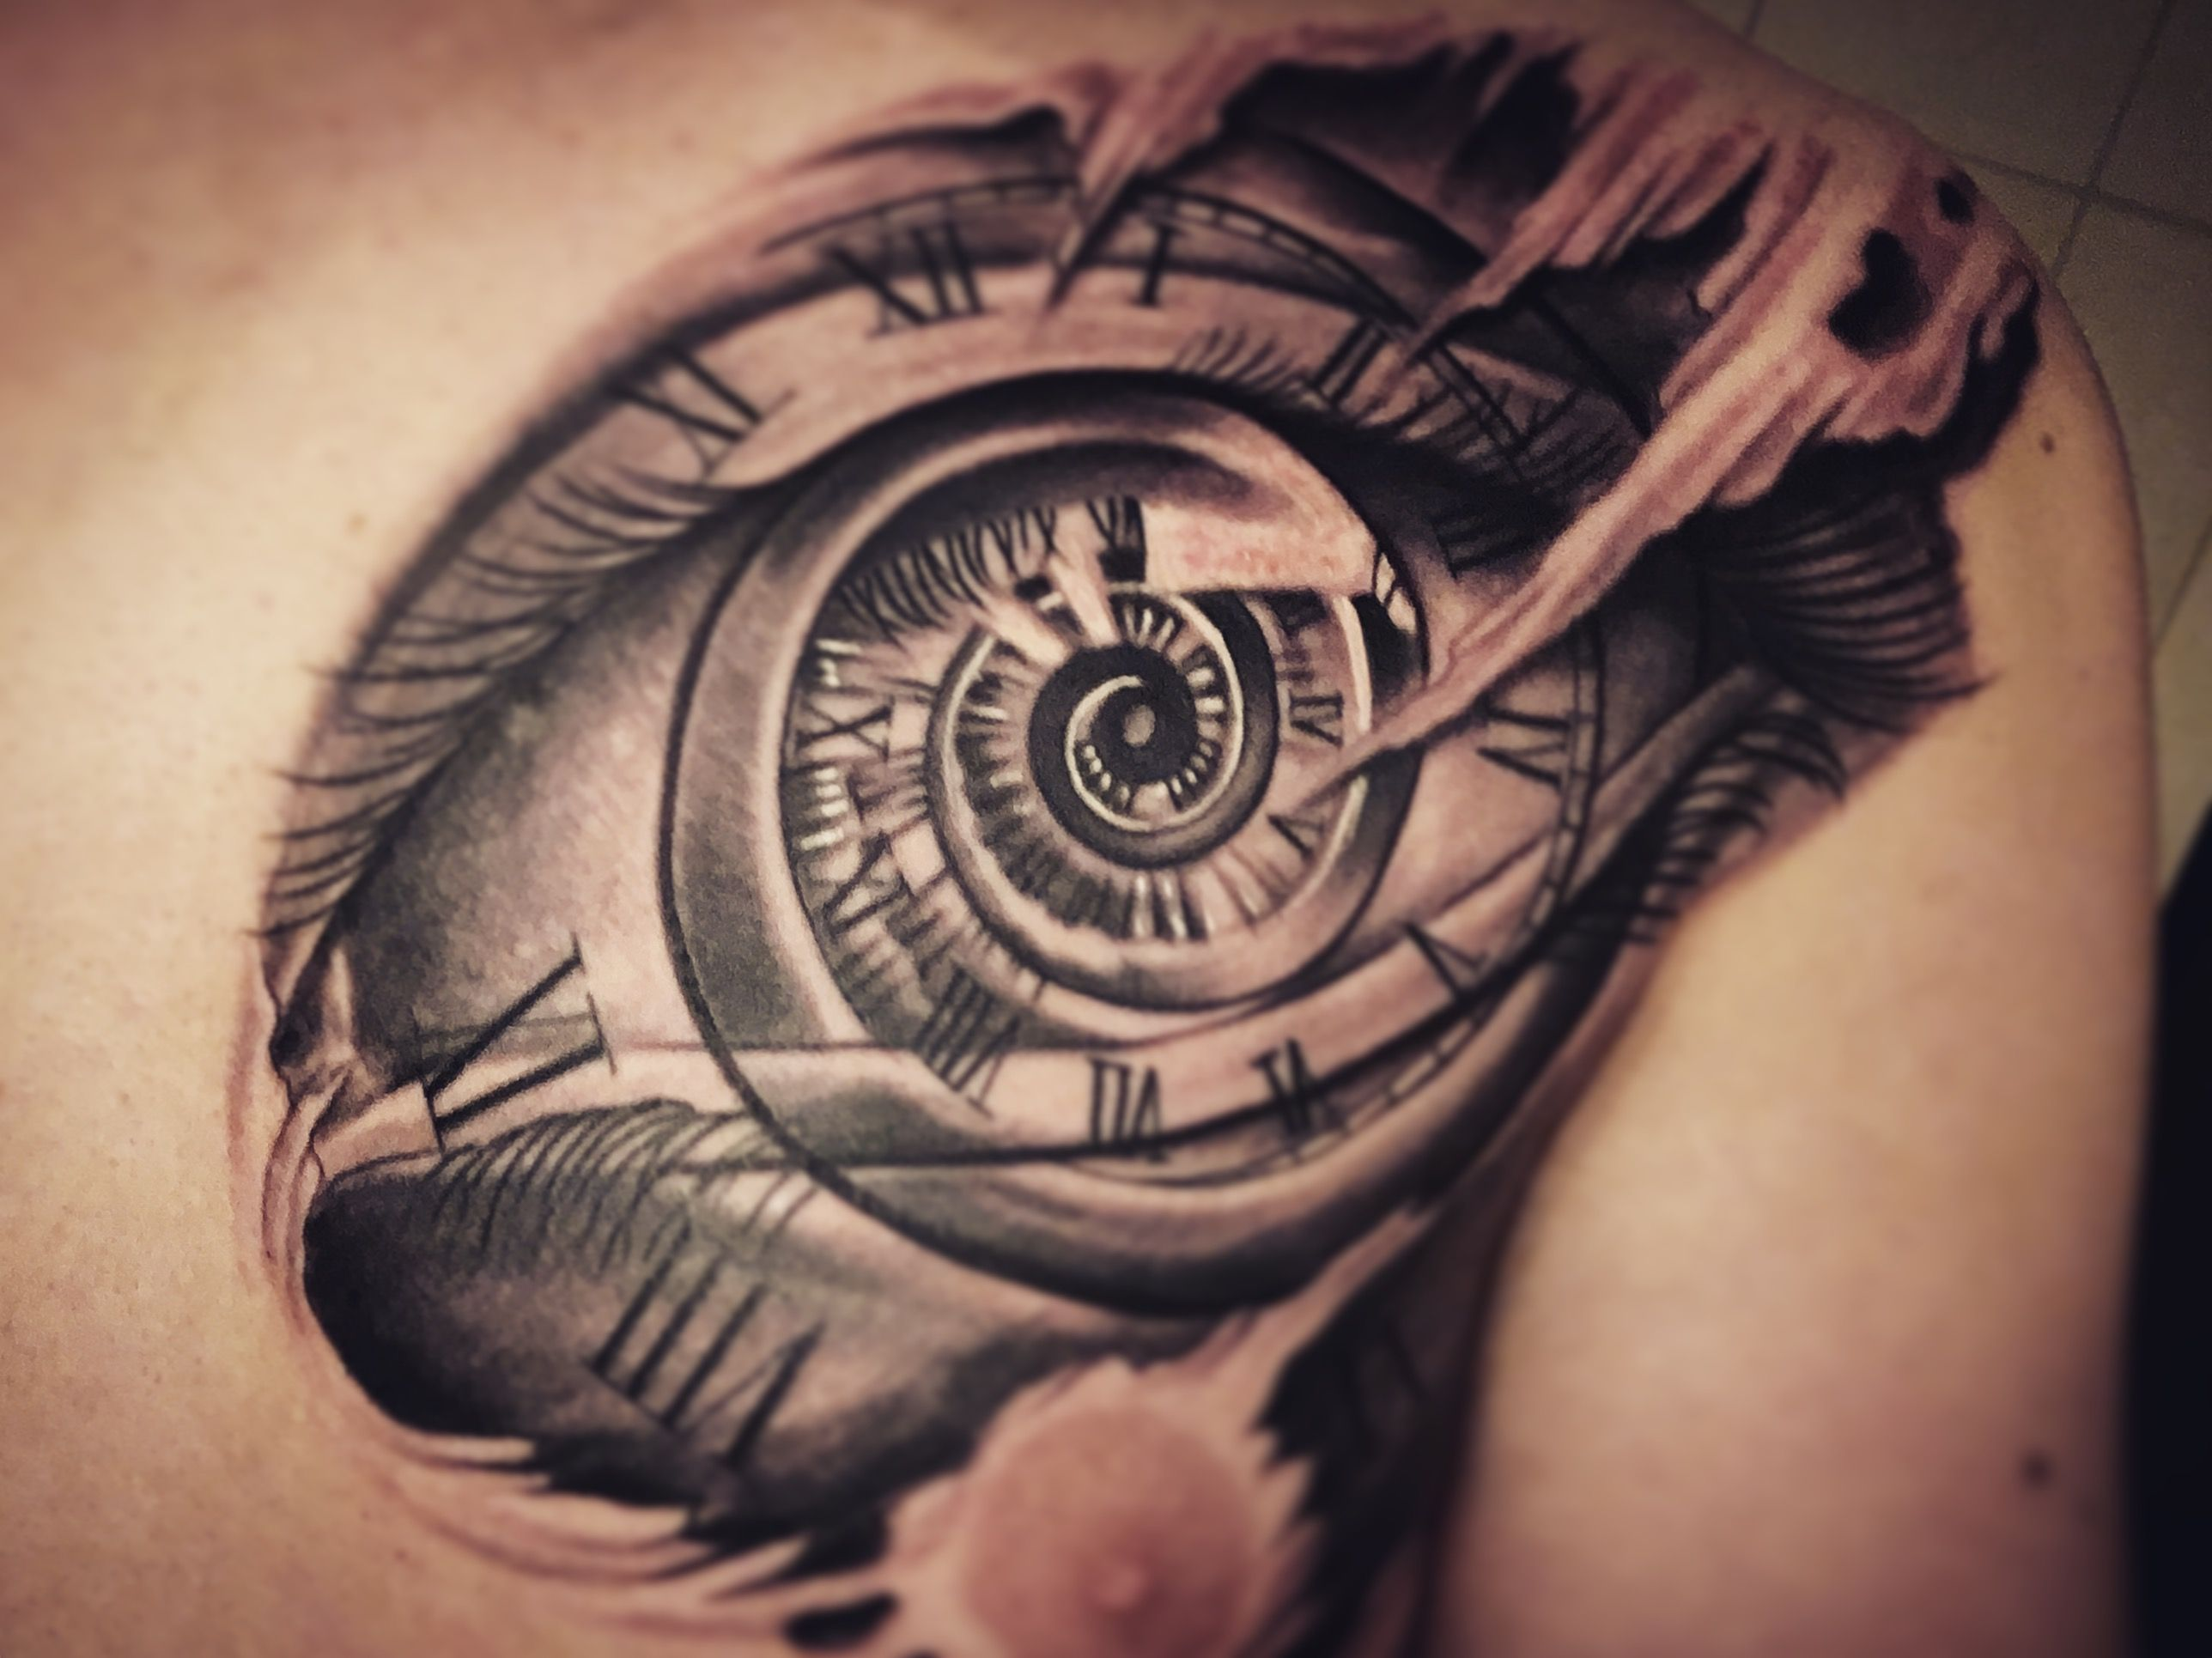 Tattoo Clock Wing Chest: Tattoo, Black And Gray, Chest, Clock, Eye, Riped Skin